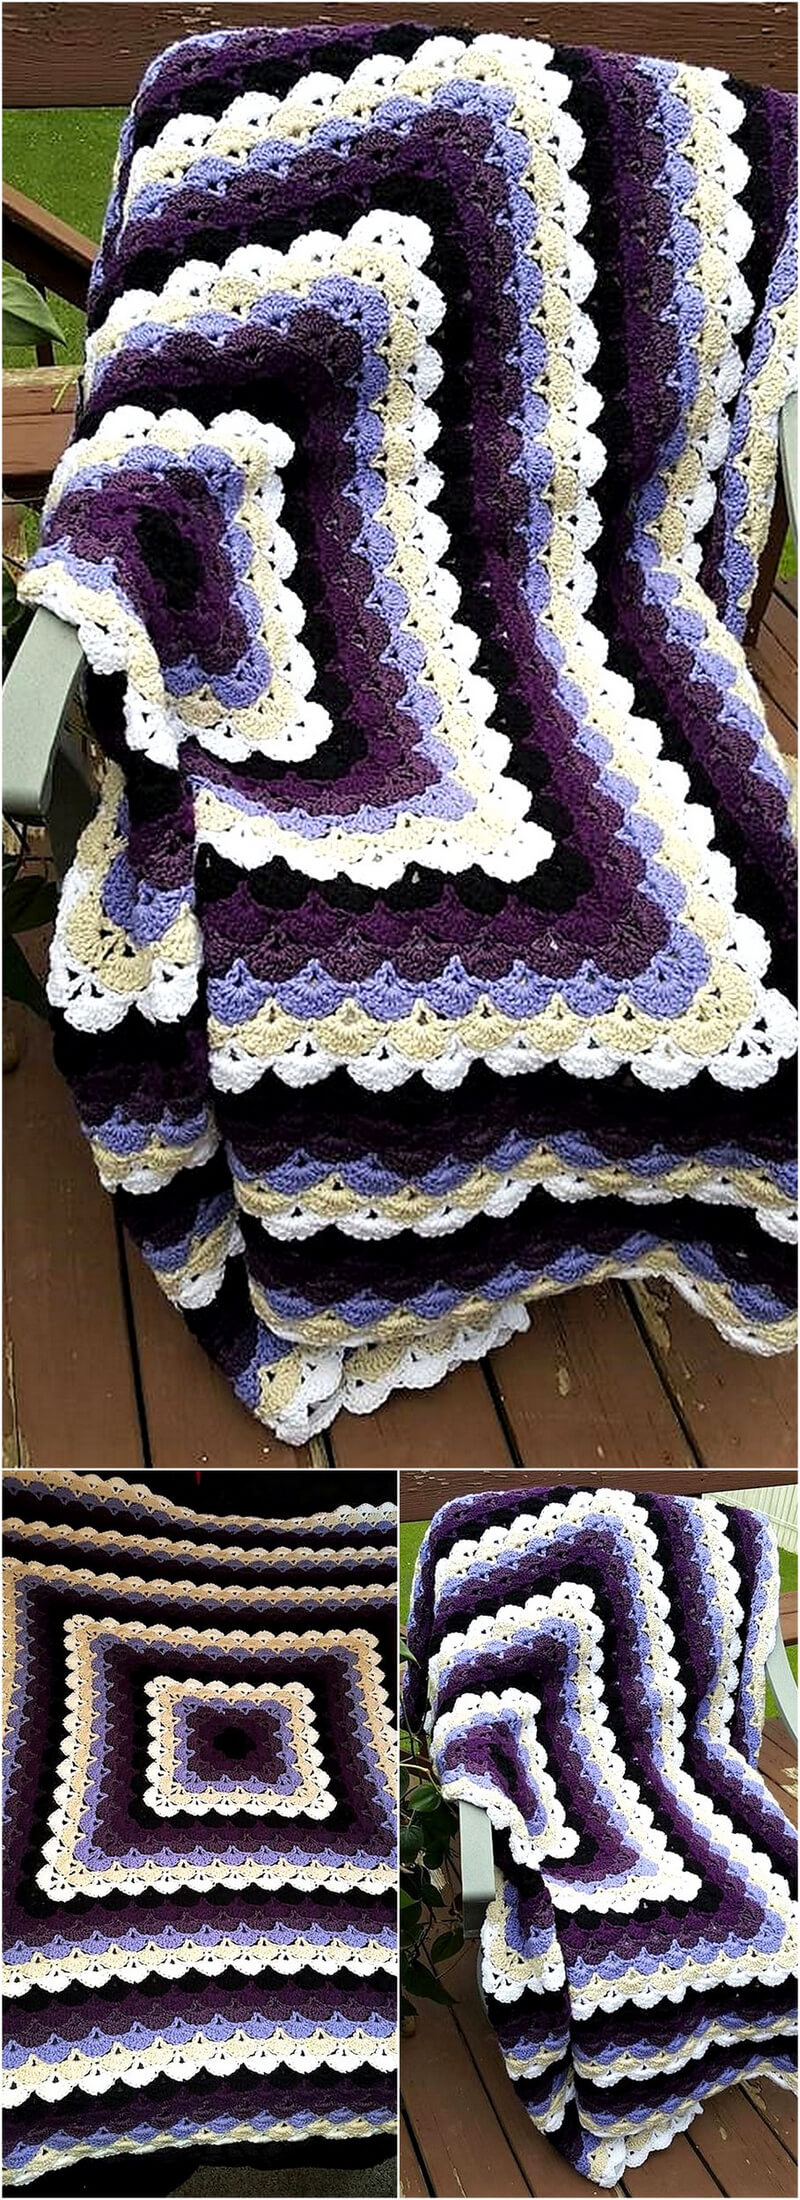 crocheted afghan idea 16